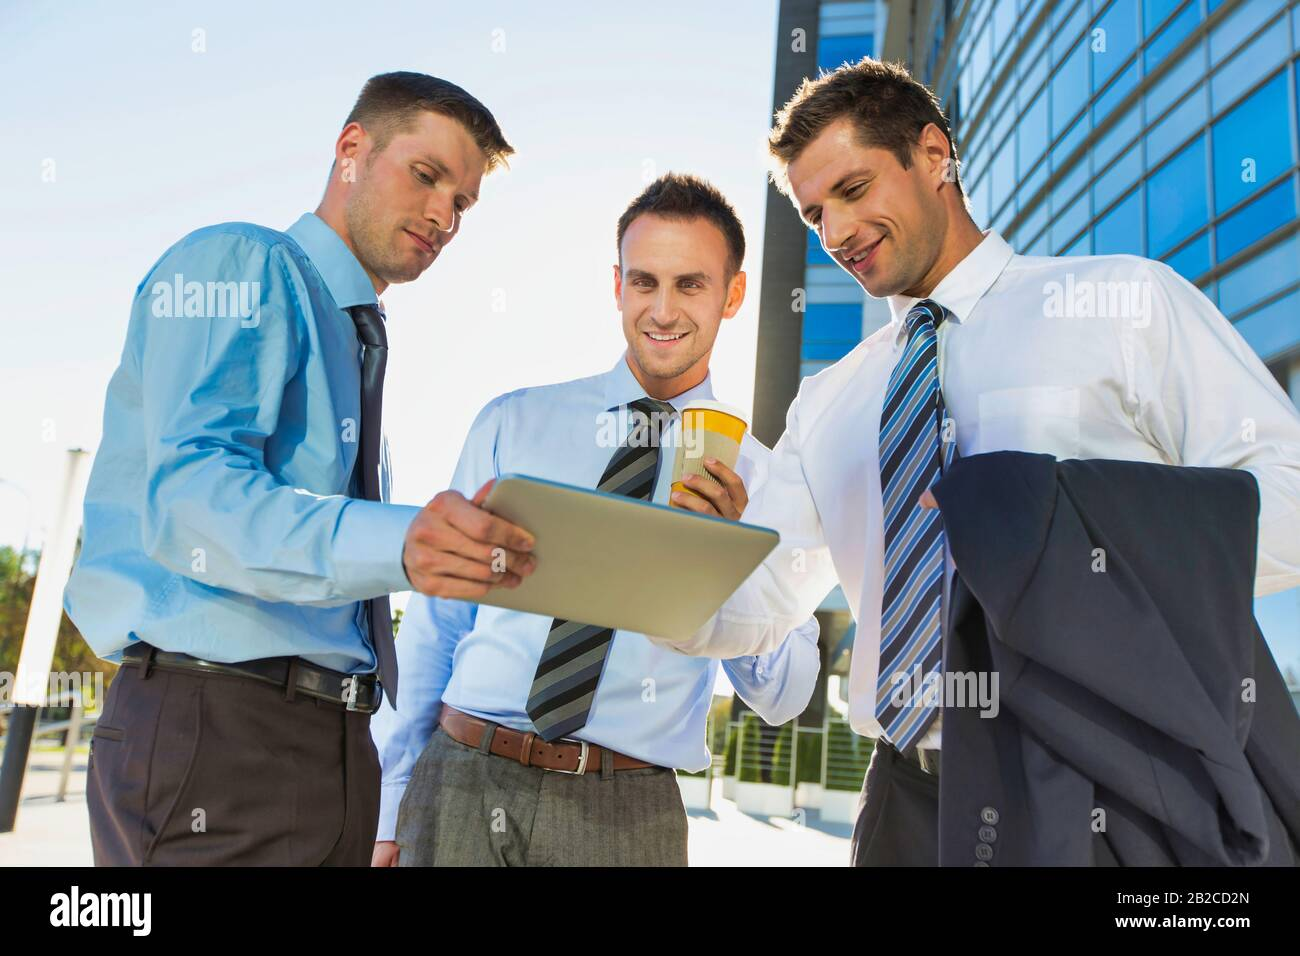 Mature attractive businessman showing and discussing plans over digital tablet with colleagues against office building Stock Photo